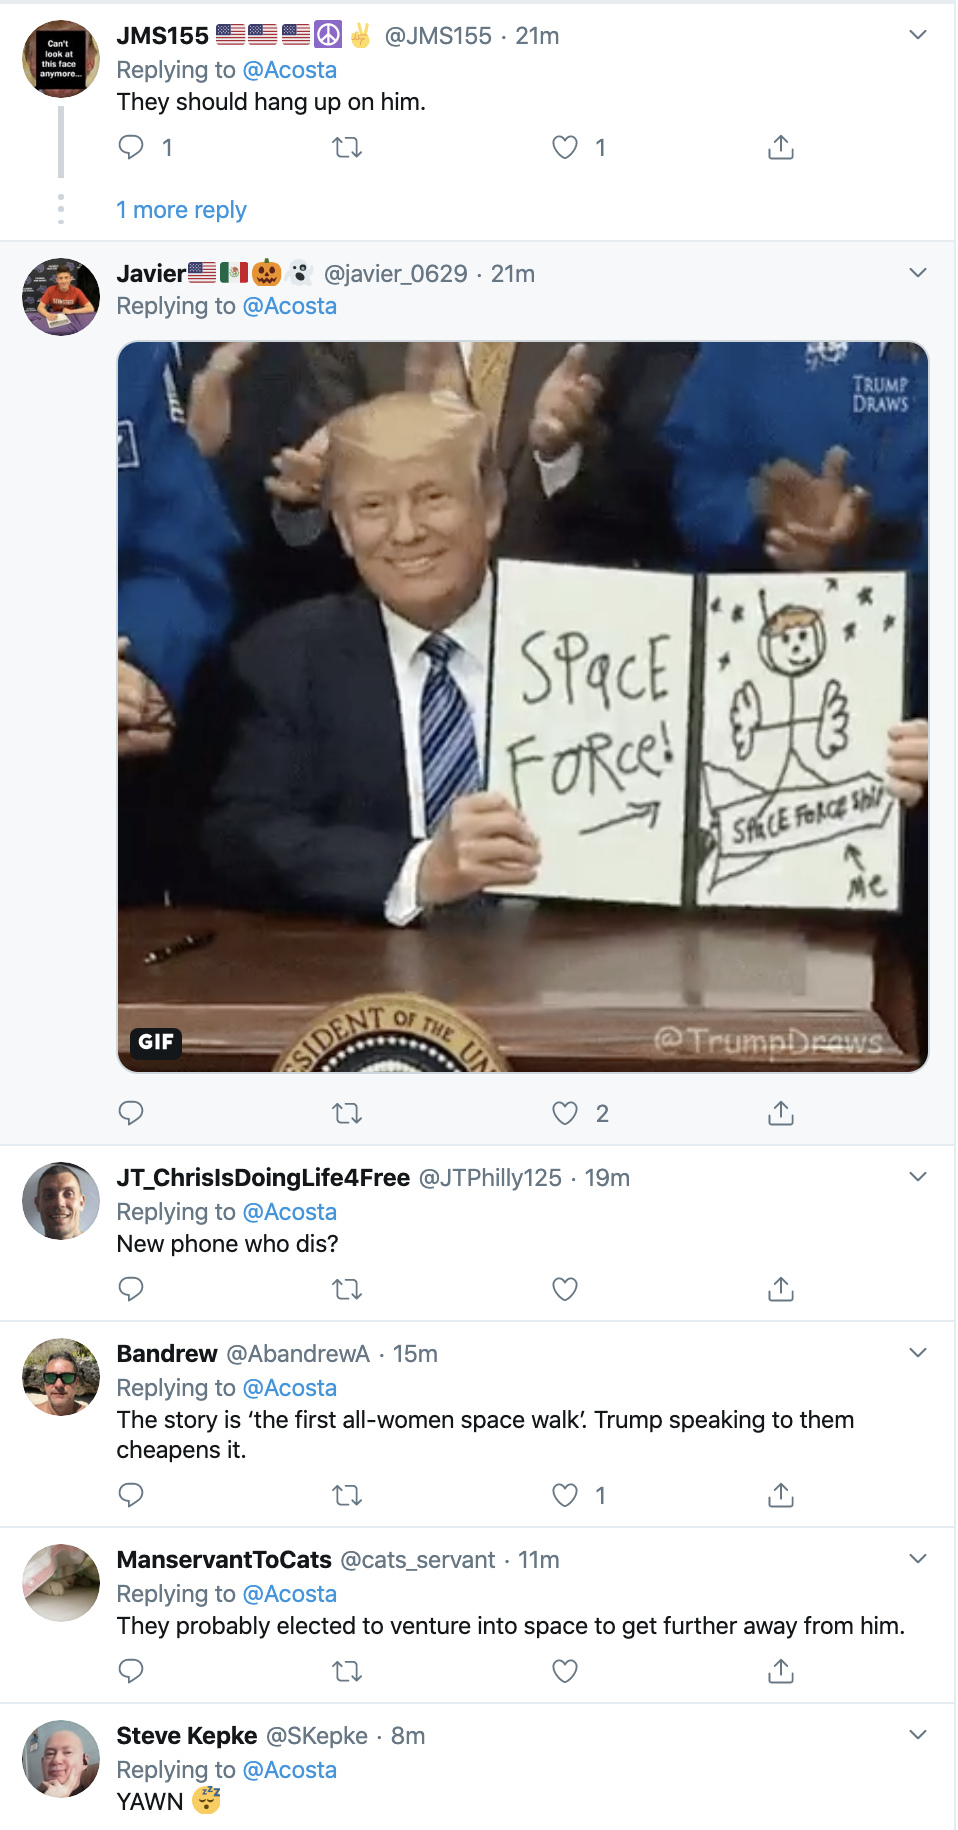 Screen-Shot-2019-10-18-at-12.21.34-PM Acosta Upstages Trump With Friday Afternoon Muti-Tweet Take Down Corruption Crime Domestic Policy Donald Trump Education Election 2016 Election 2020 Featured Feminism History Human Rights Impeachment Investigation Military National Security Politics Racism Terrorism Top Stories War Women's Rights